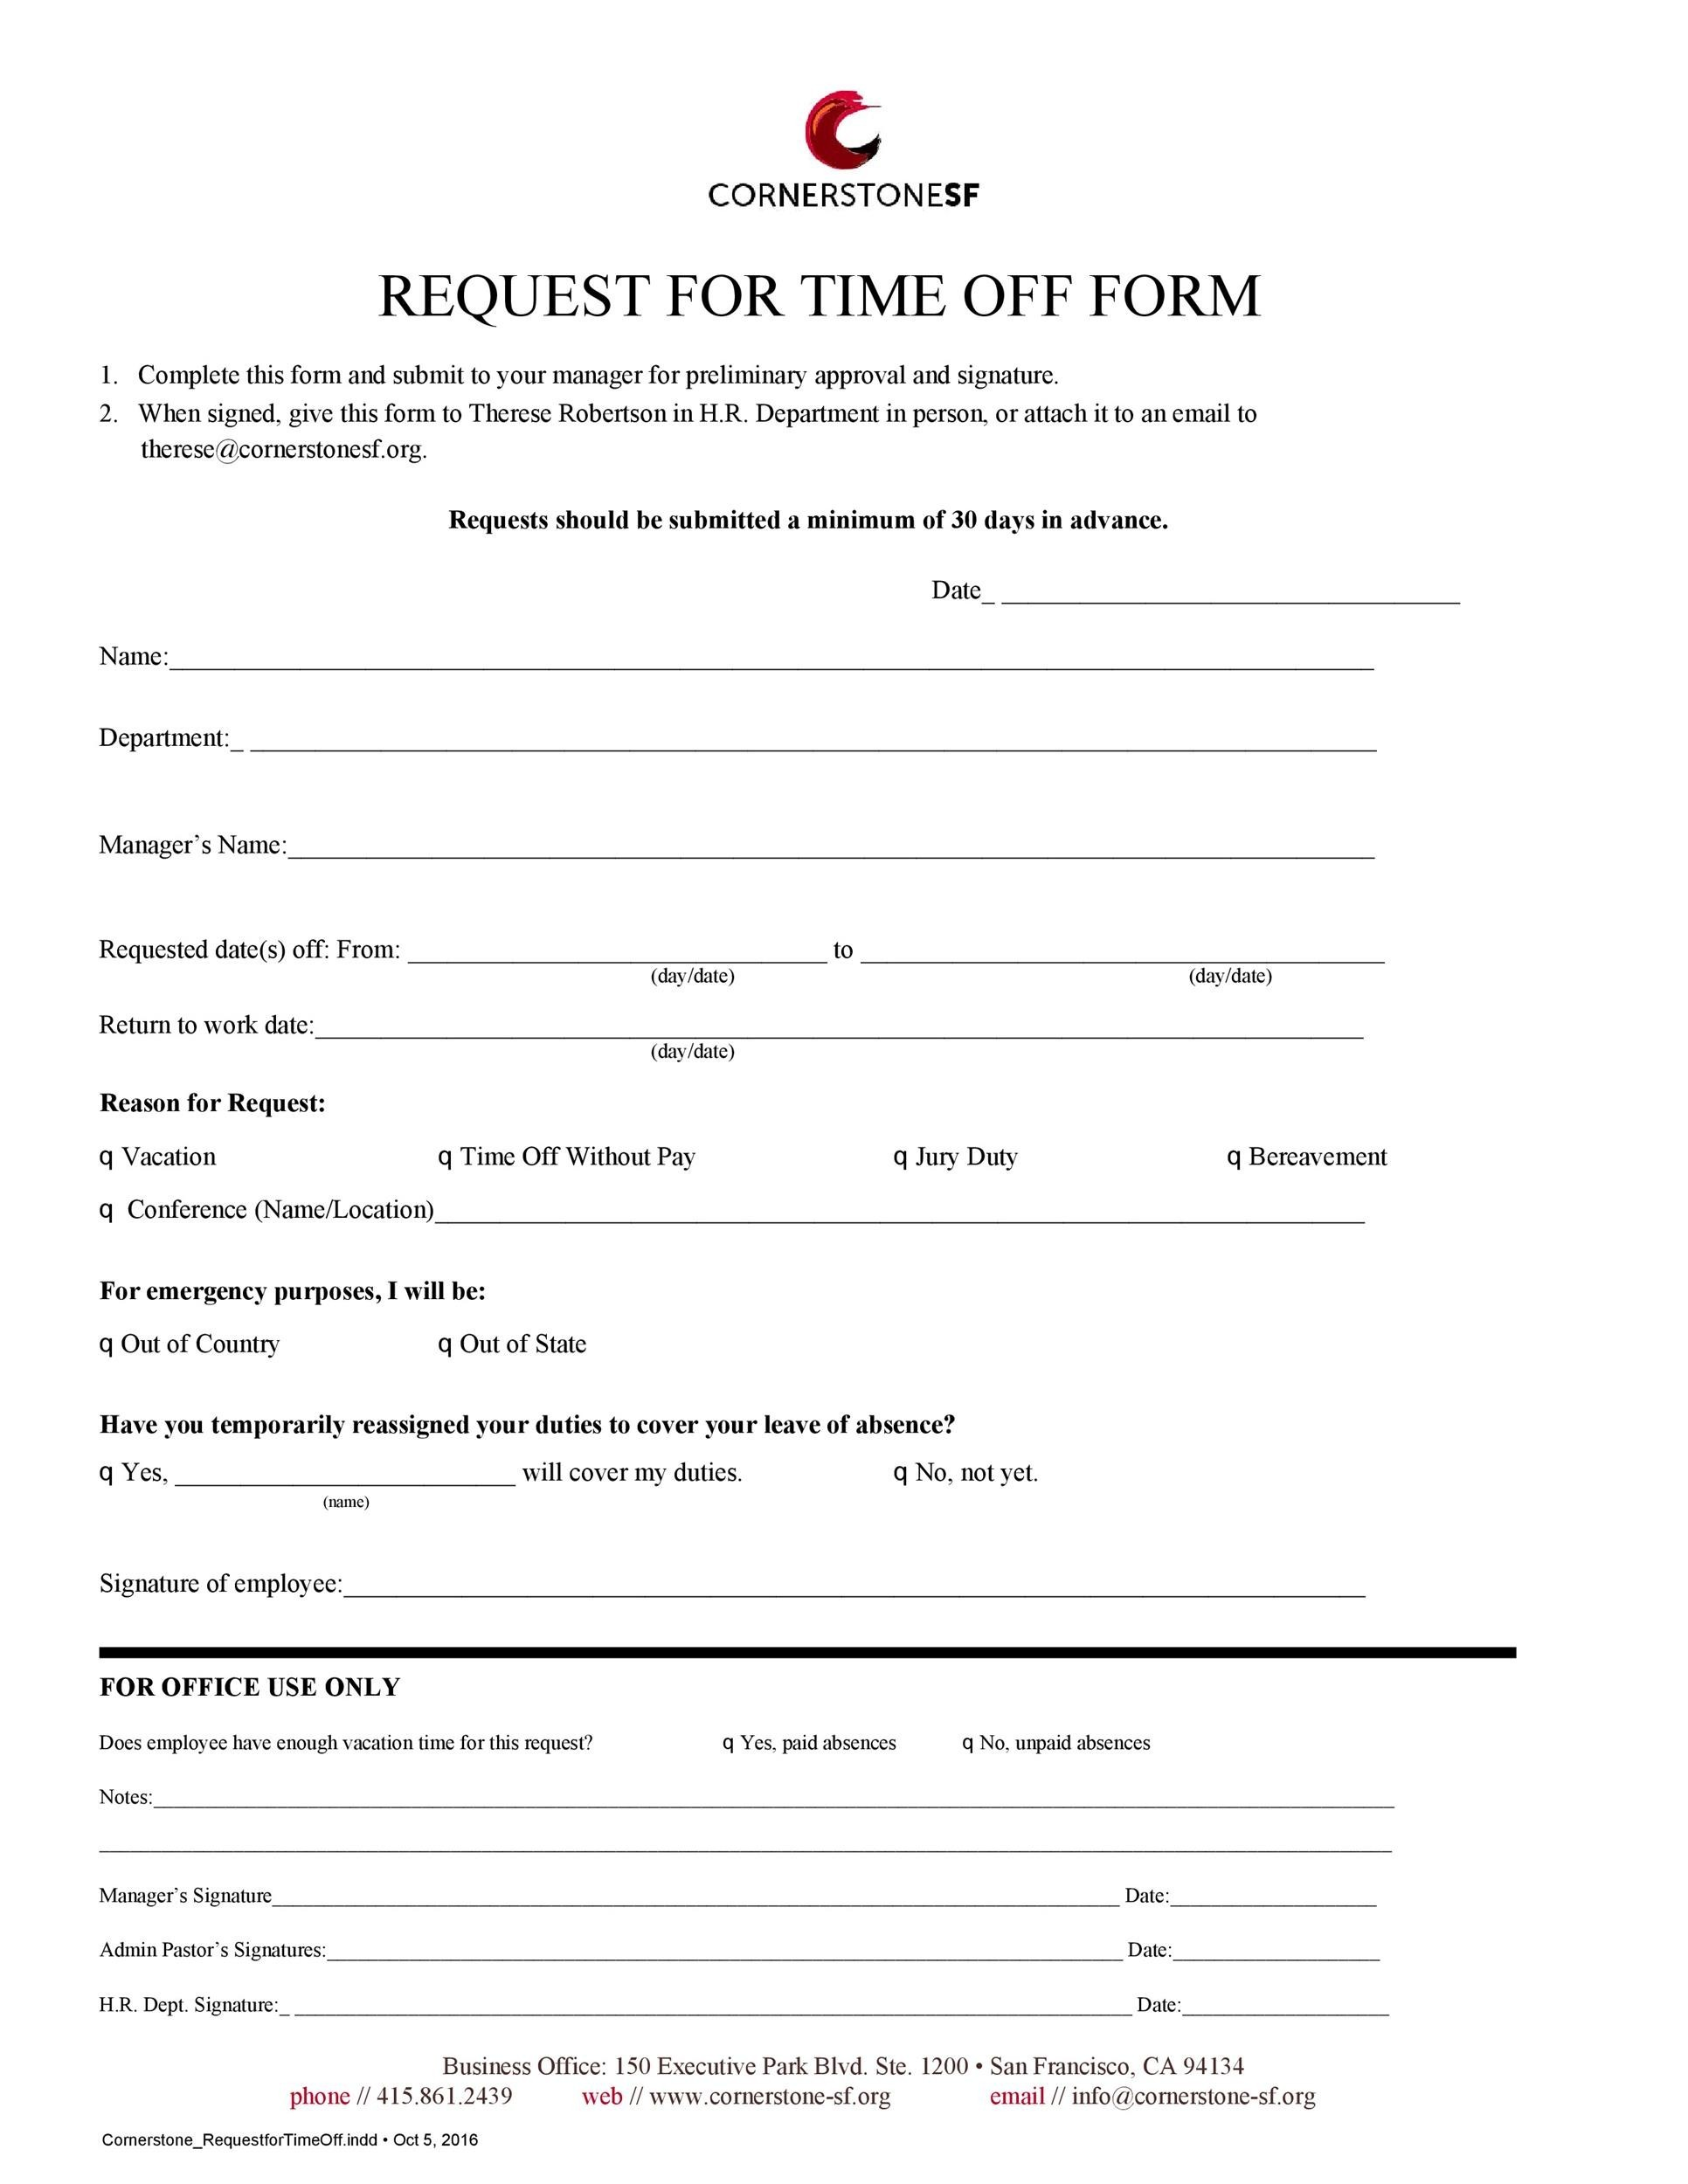 request time off form